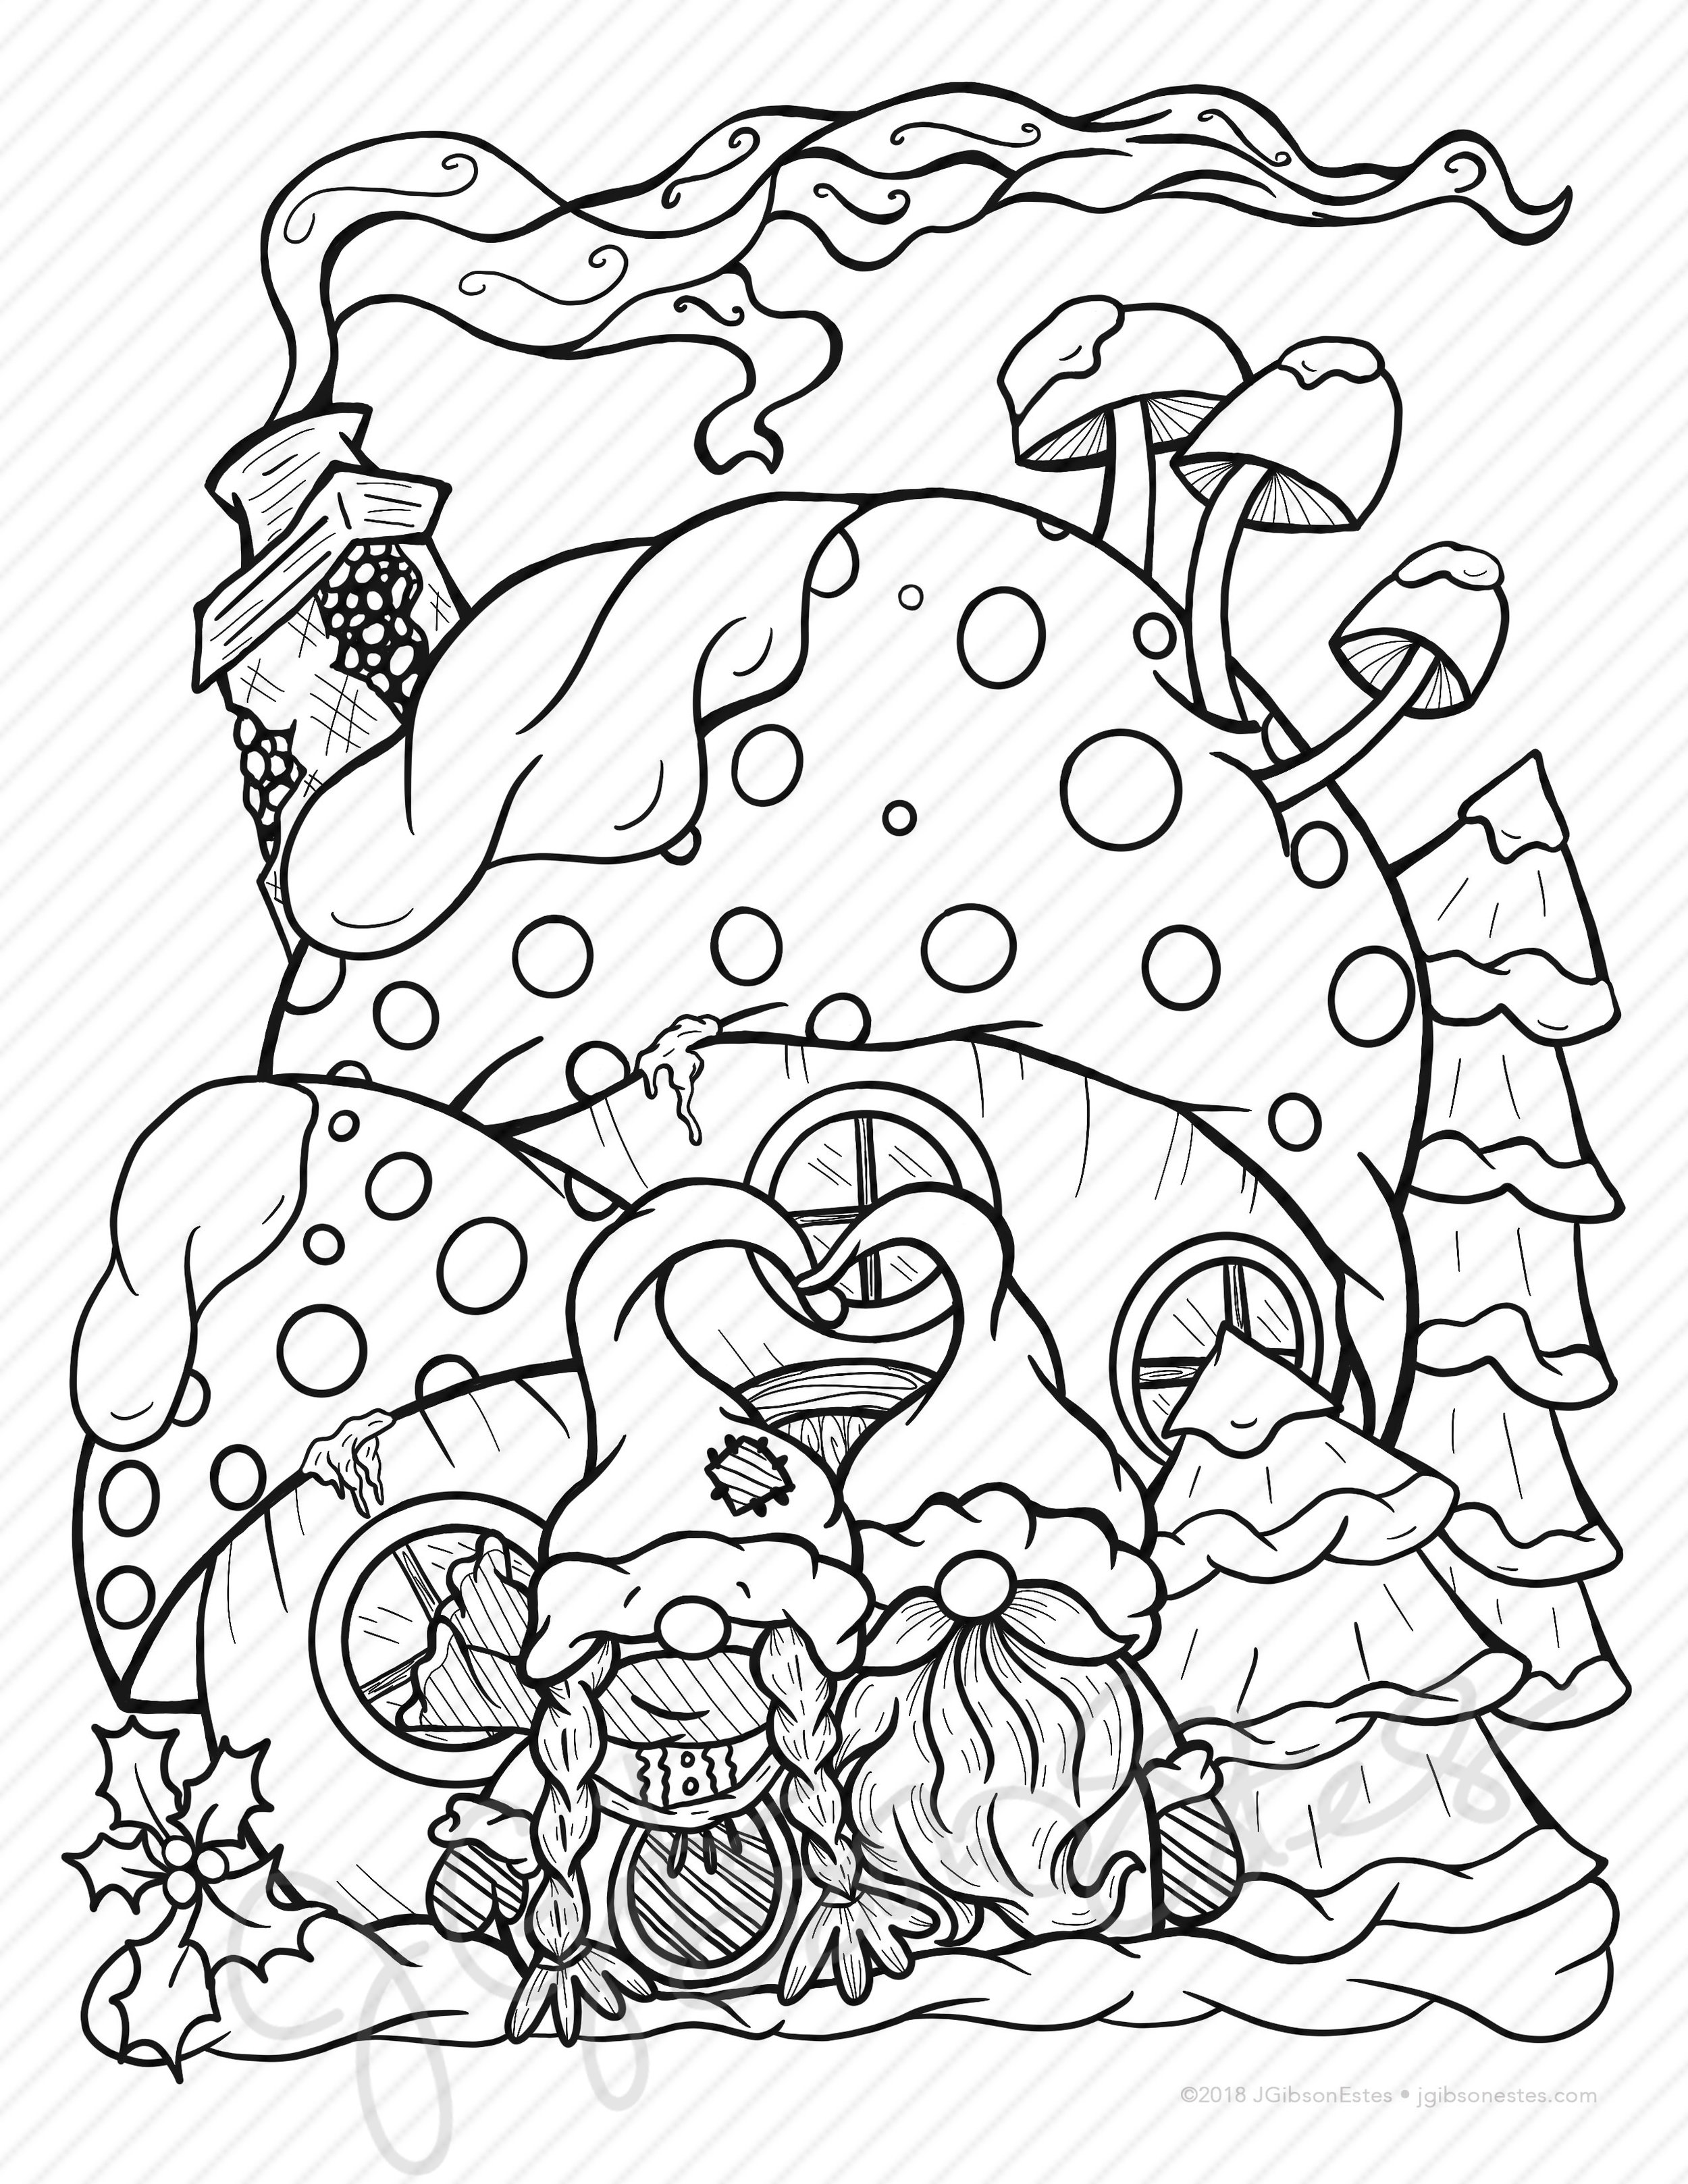 Gnome For The Holidays Printable Christmas Coloring Page And Digital Stamp J Gibson Estes